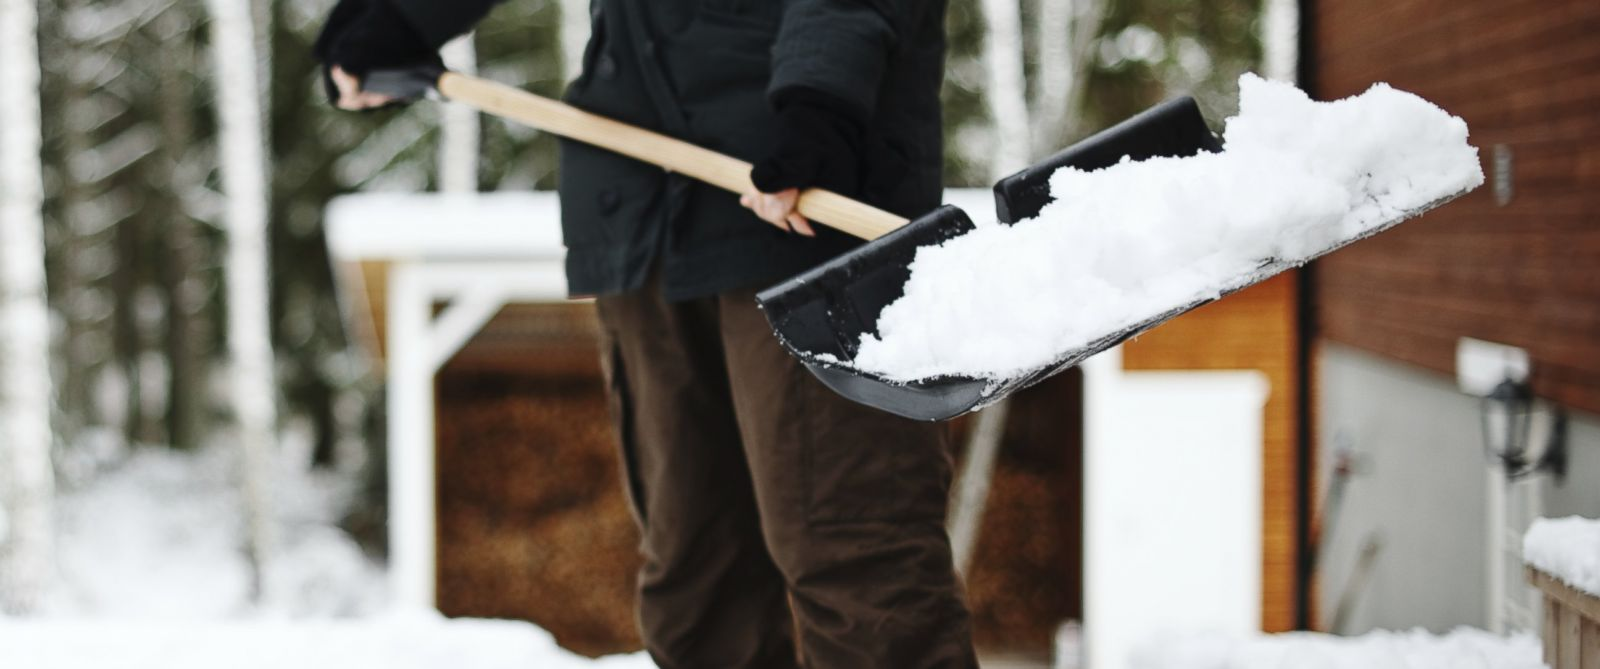 PHOTO: A man is pictured shoveling snow in this stock image.